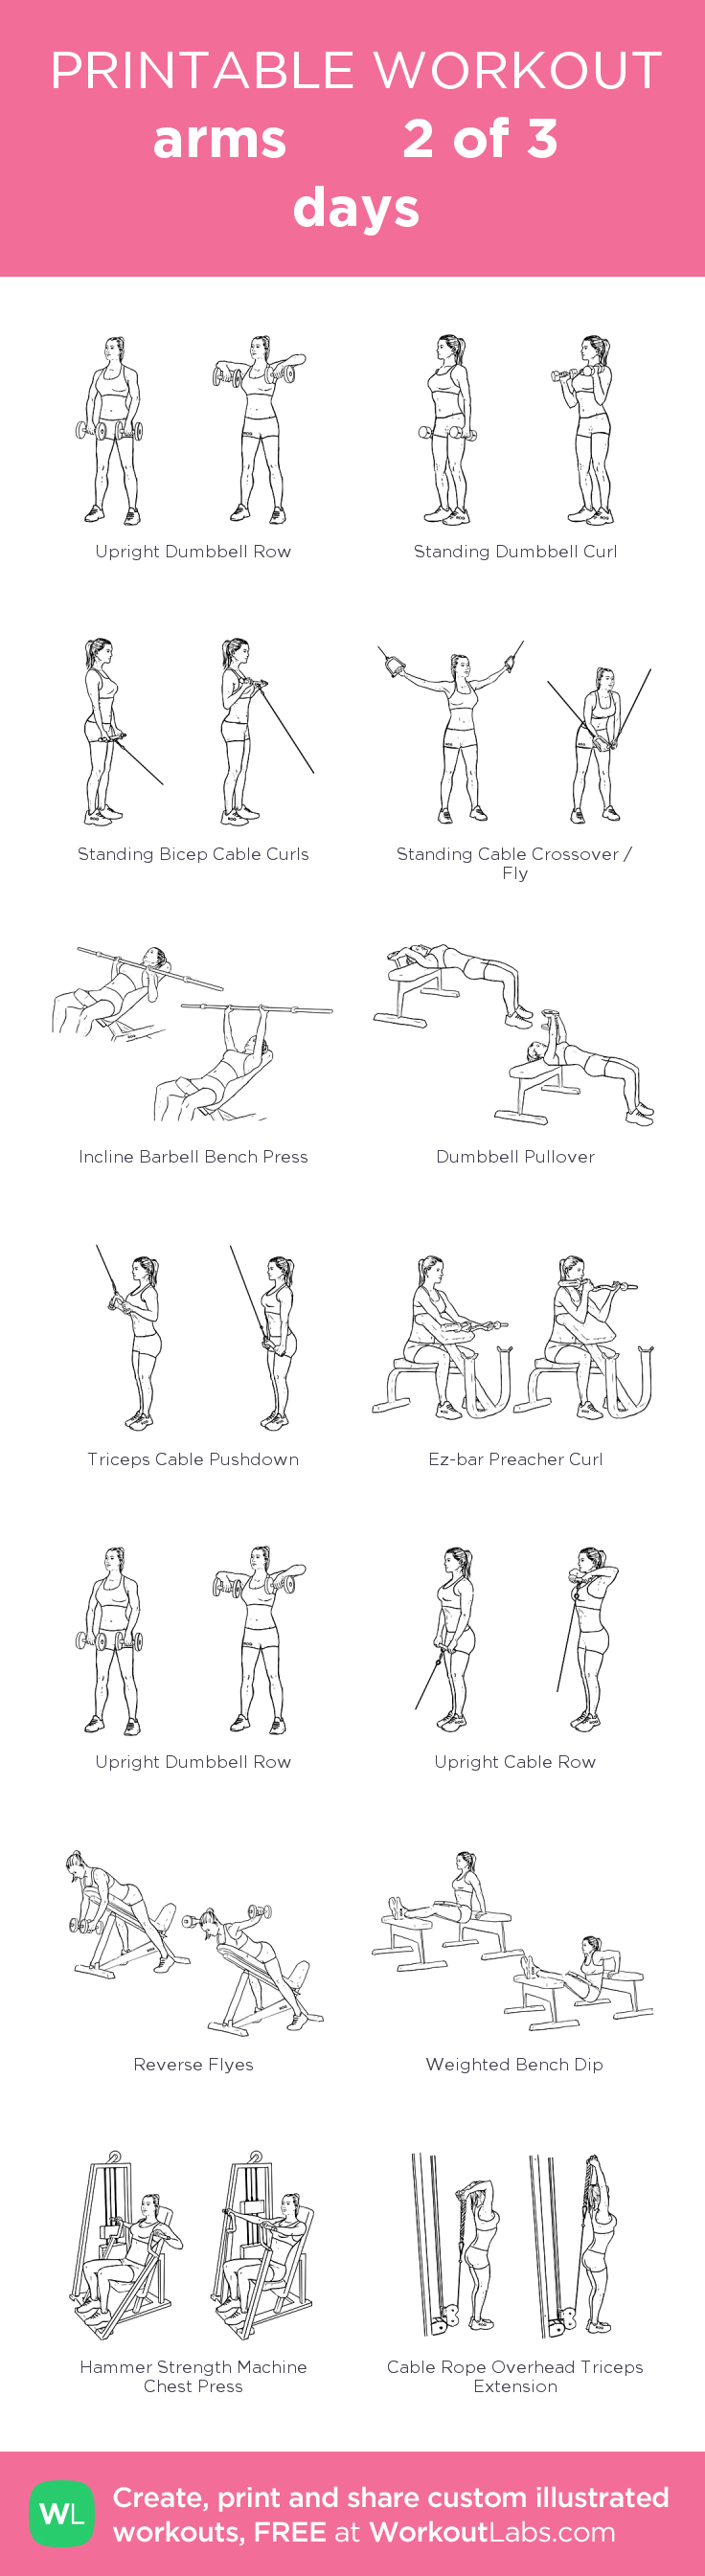 arms 2 of 3 days: my custom printable workout by